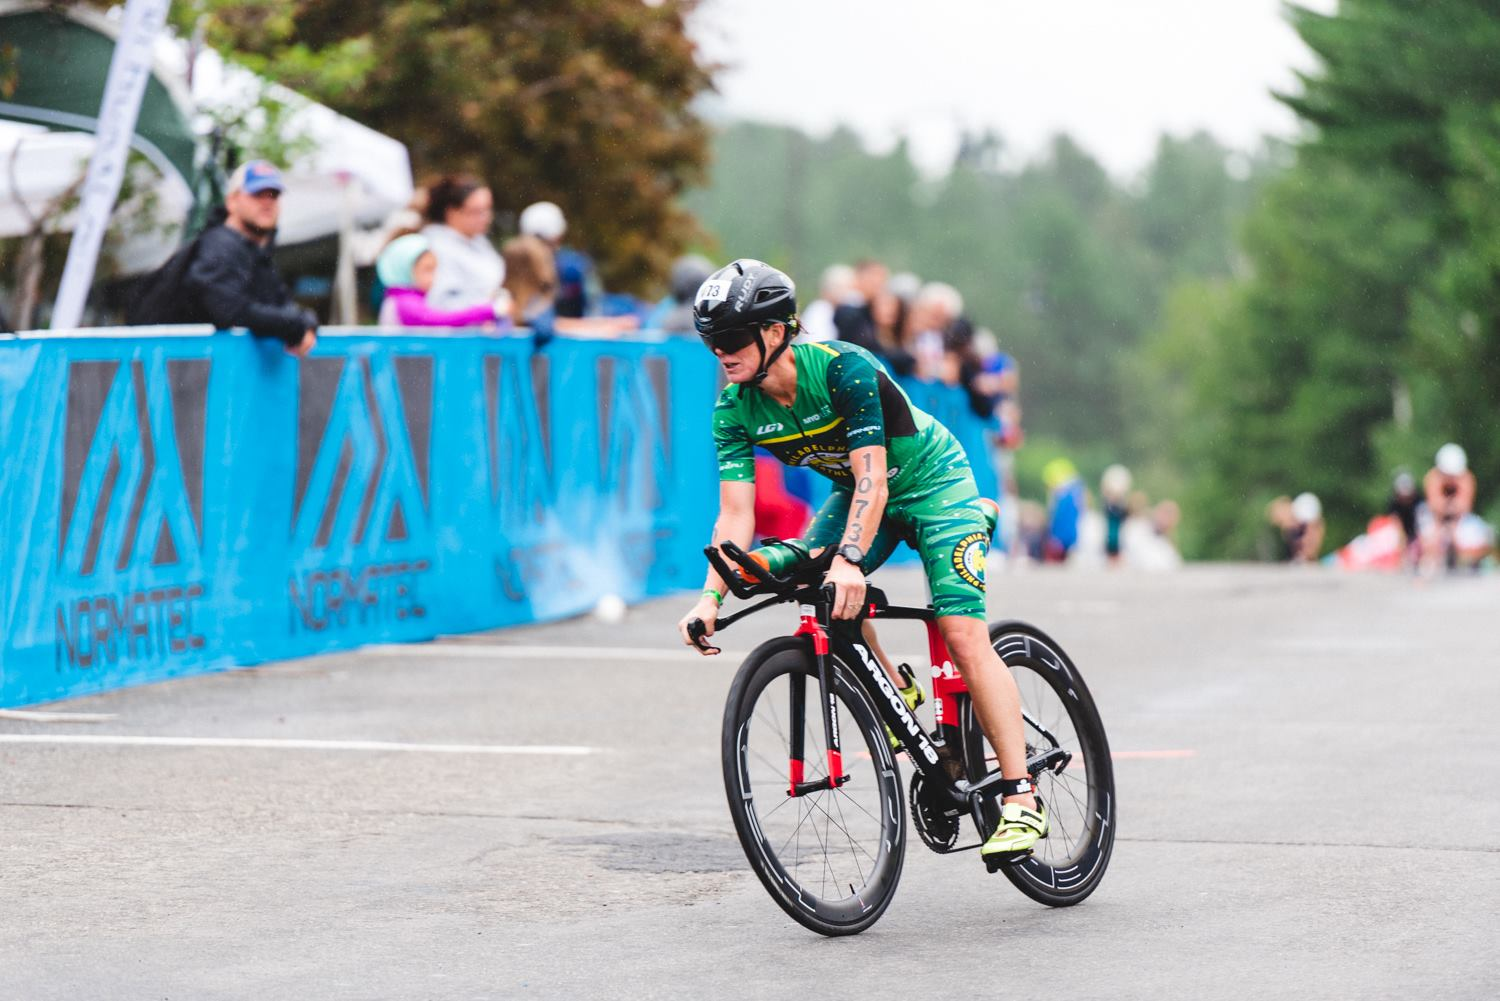 Coach_Terry_Wilson_Pursuit_of_The_Perfect_Race_IRONMAN_Lake_Placid_Kathleen_Murray_Bike_Out_.jpg